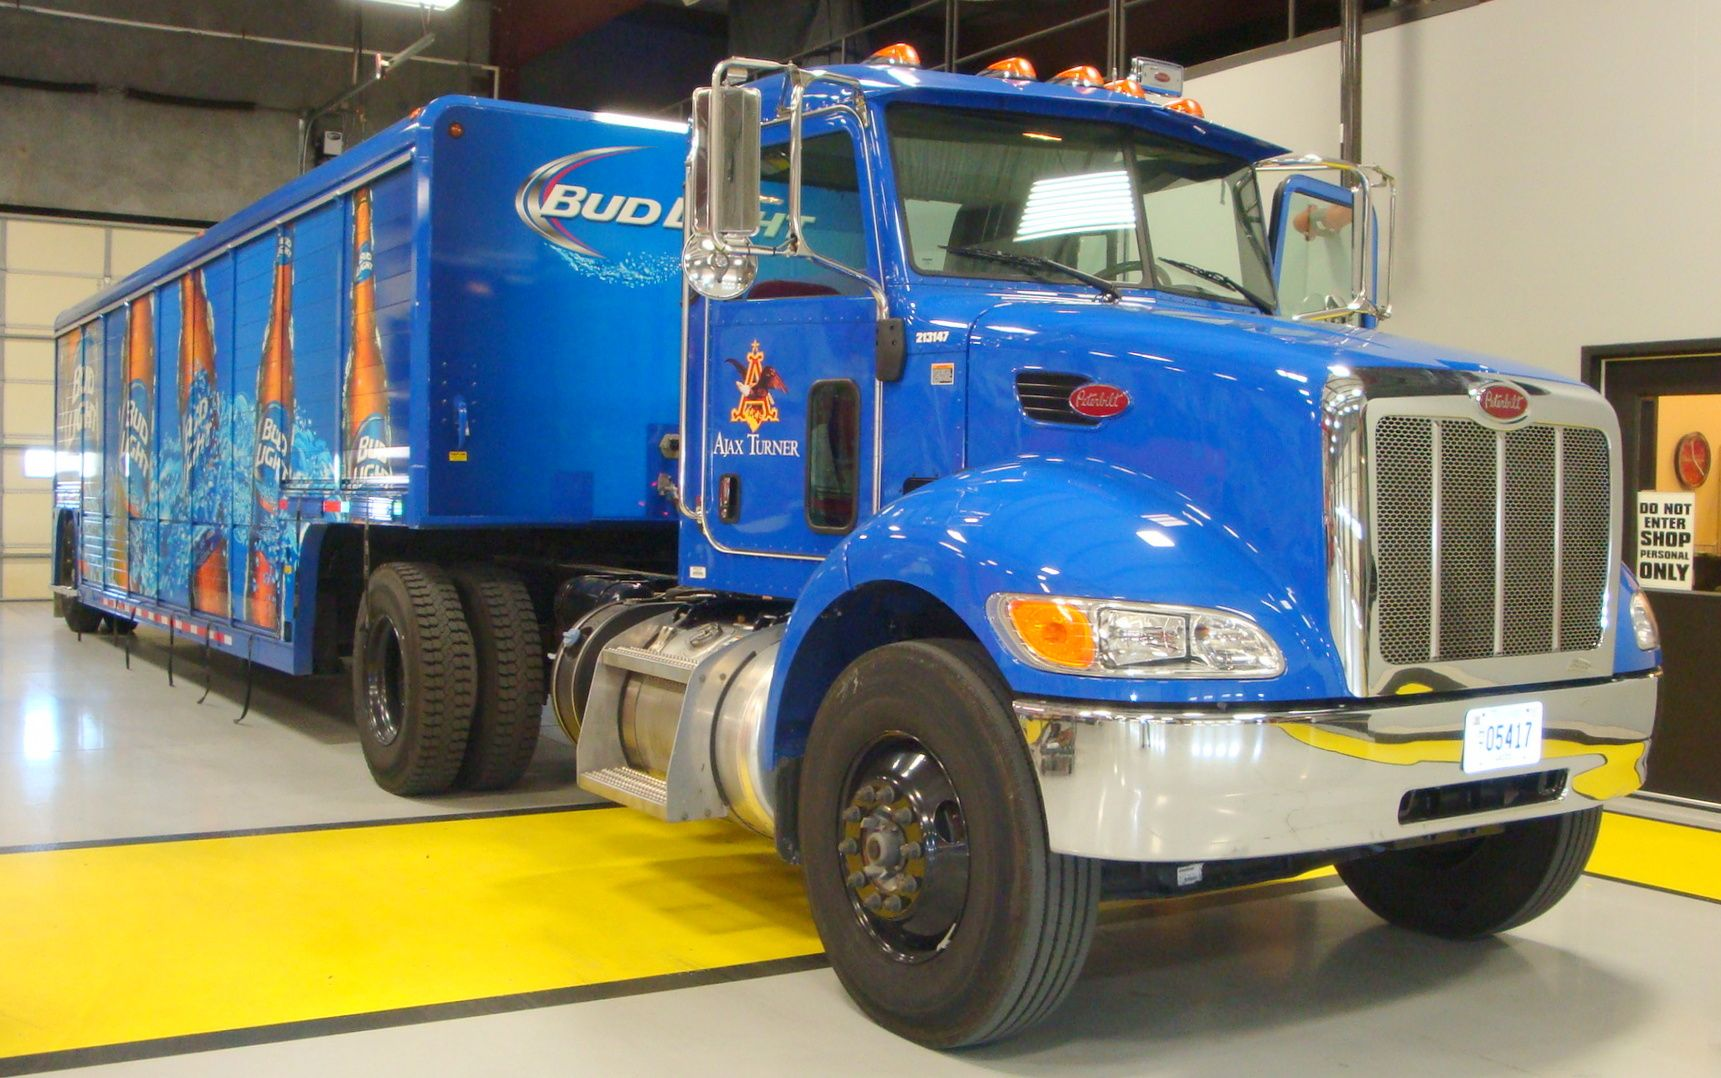 Bud light peterbilt tractor with mickey beverage bodies at ajax bud light peterbilt tractor with mickey beverage bodies at ajax turner anheuser busch transform your mozeypictures Choice Image